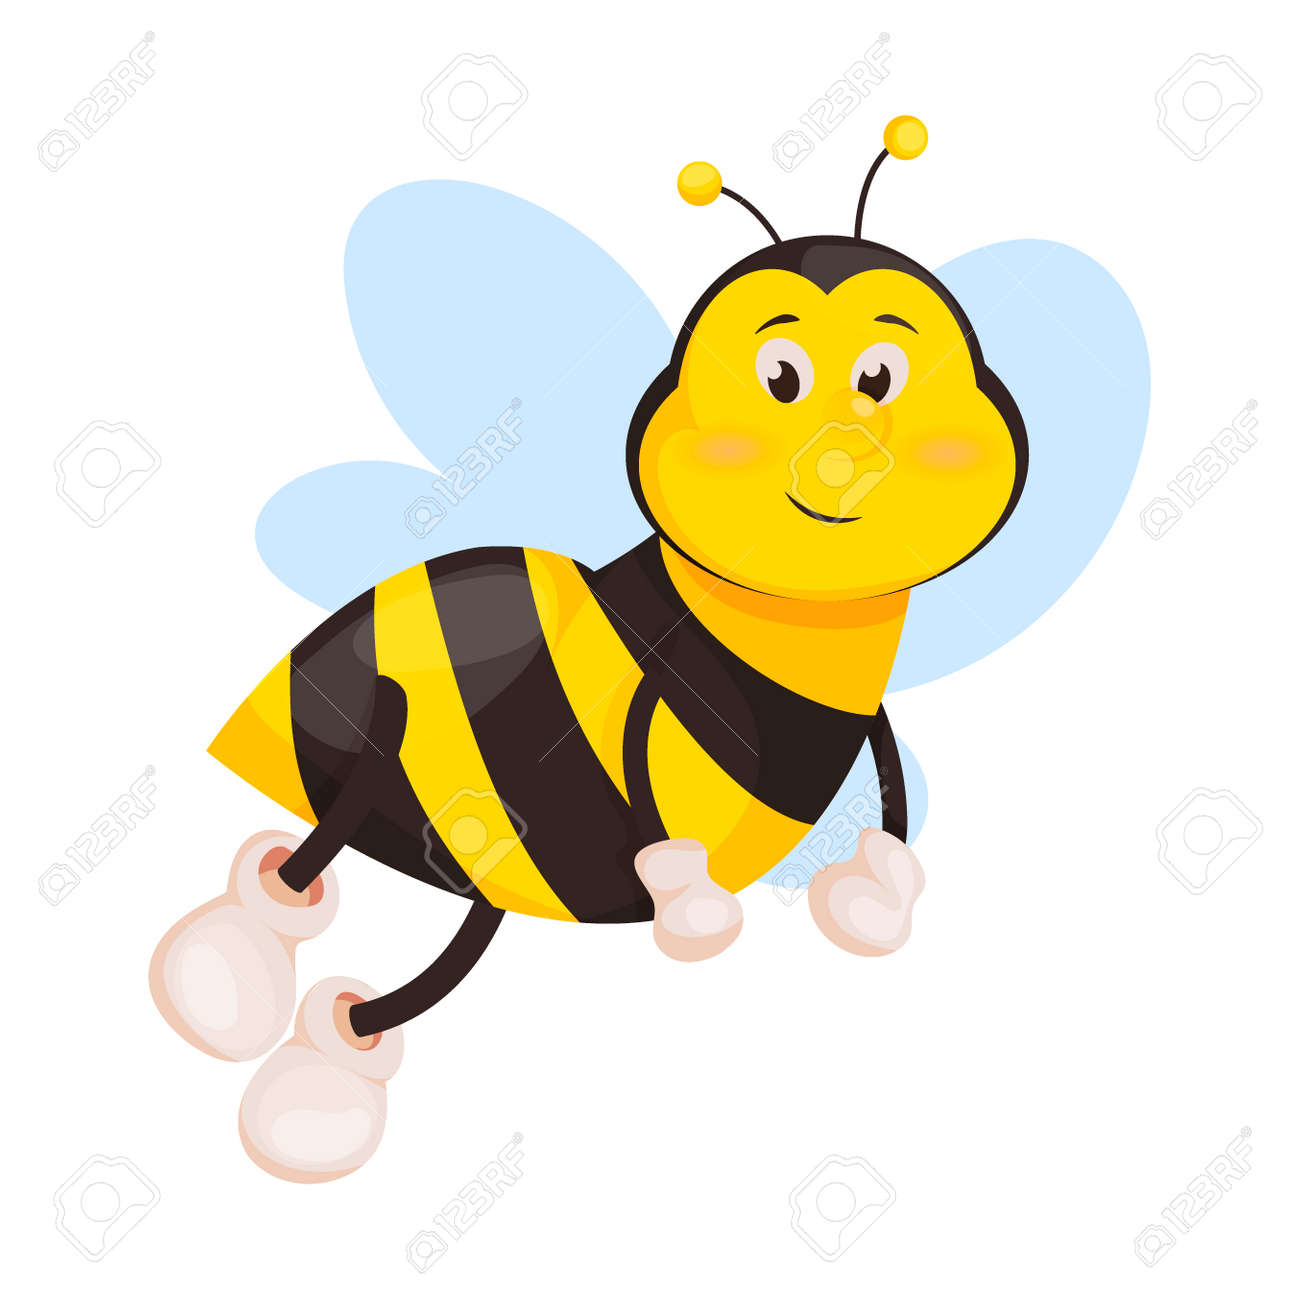 Bee Cartoon Cute Honeybee Insect Vector Illustration Isolated Royalty Free Cliparts Vectors And Stock Illustration Image 100522393